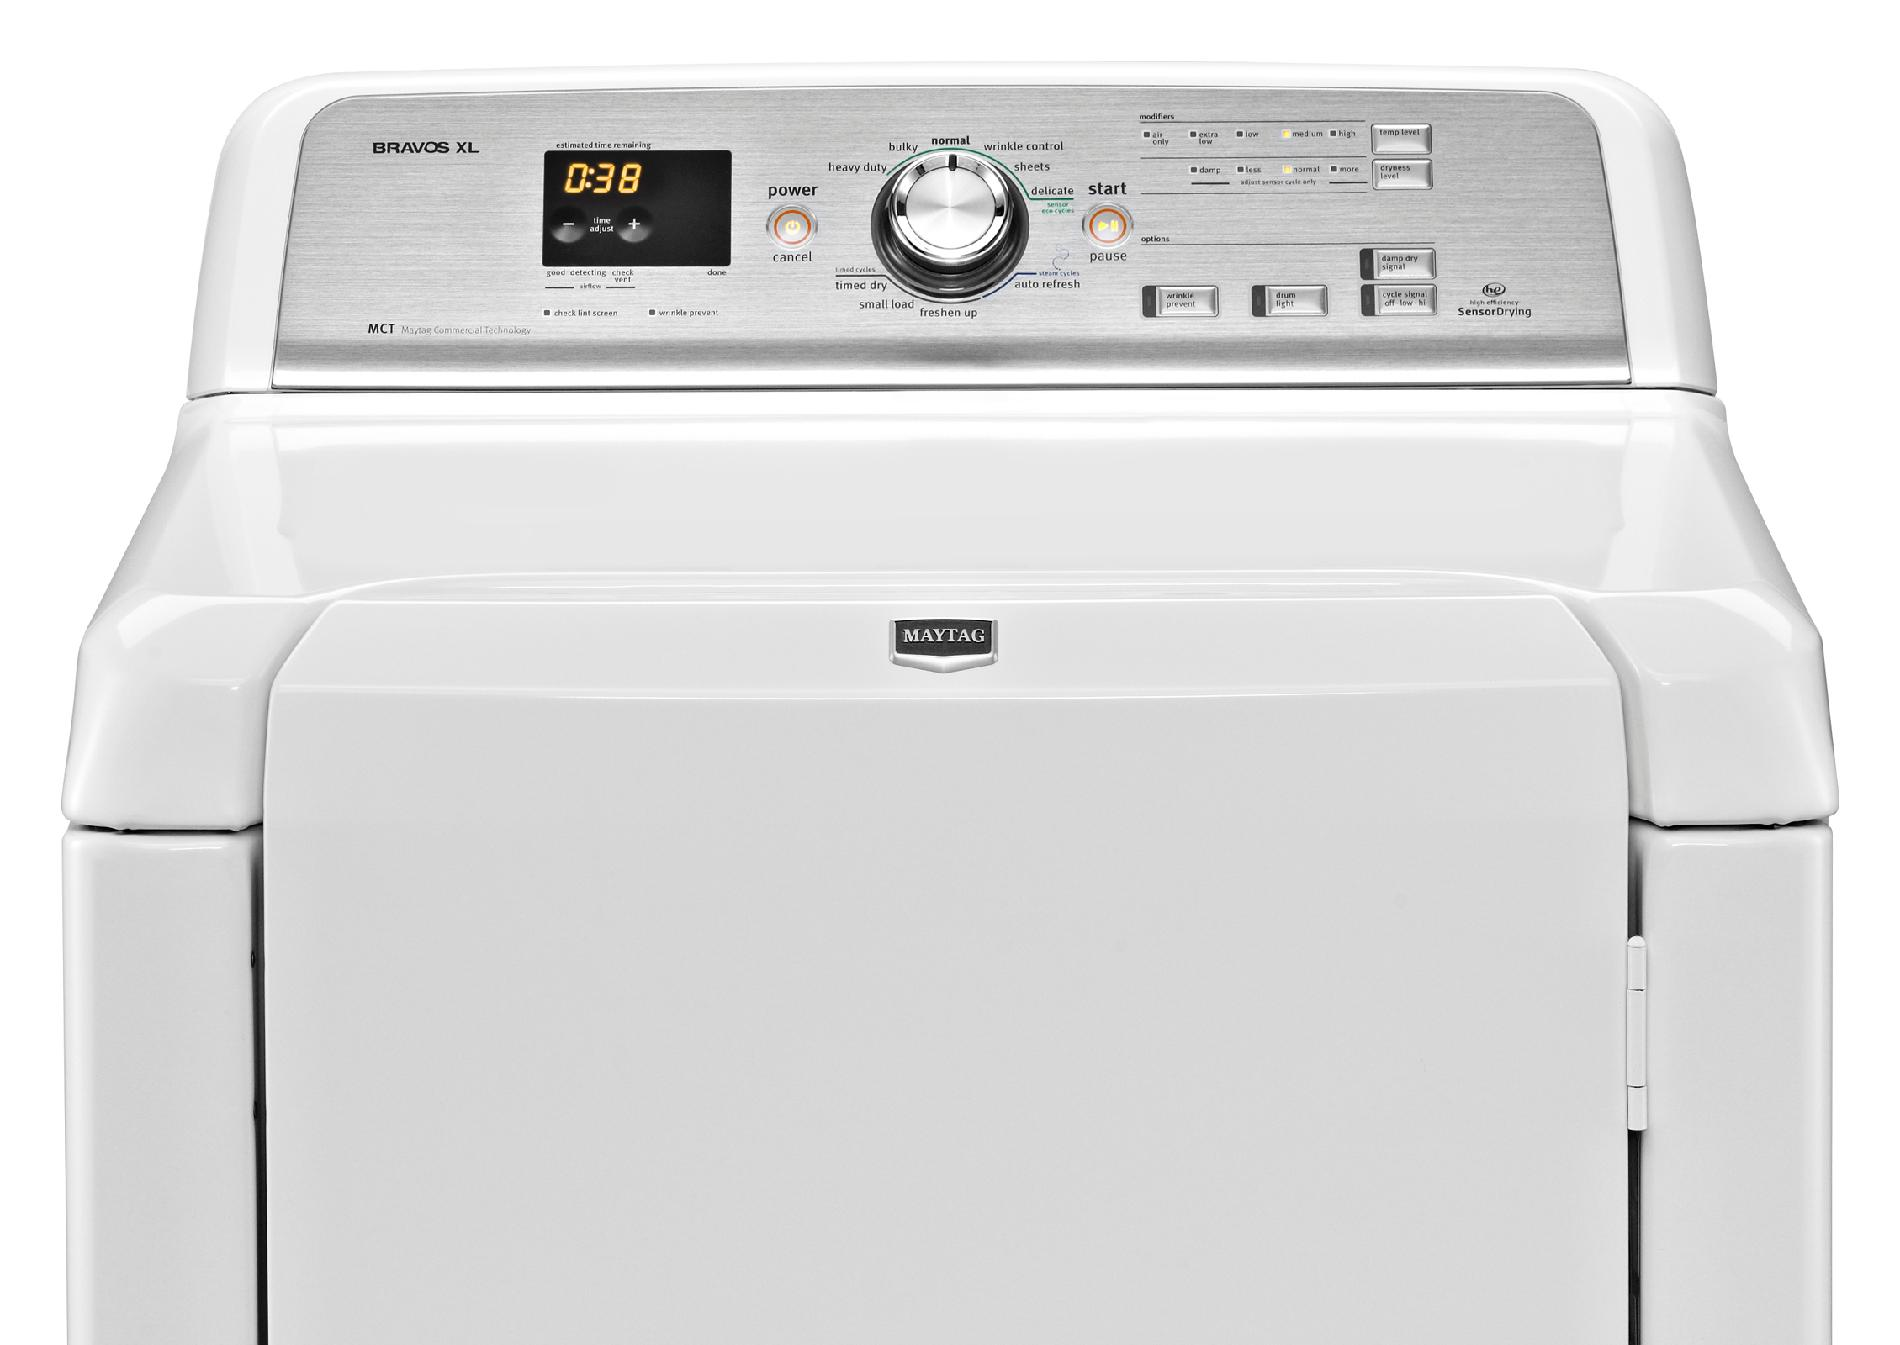 Maytag MEDB725BW 7.3 cu. ft. Bravos XL® Electric Dryer w/ Steam Refresh Cycle - White